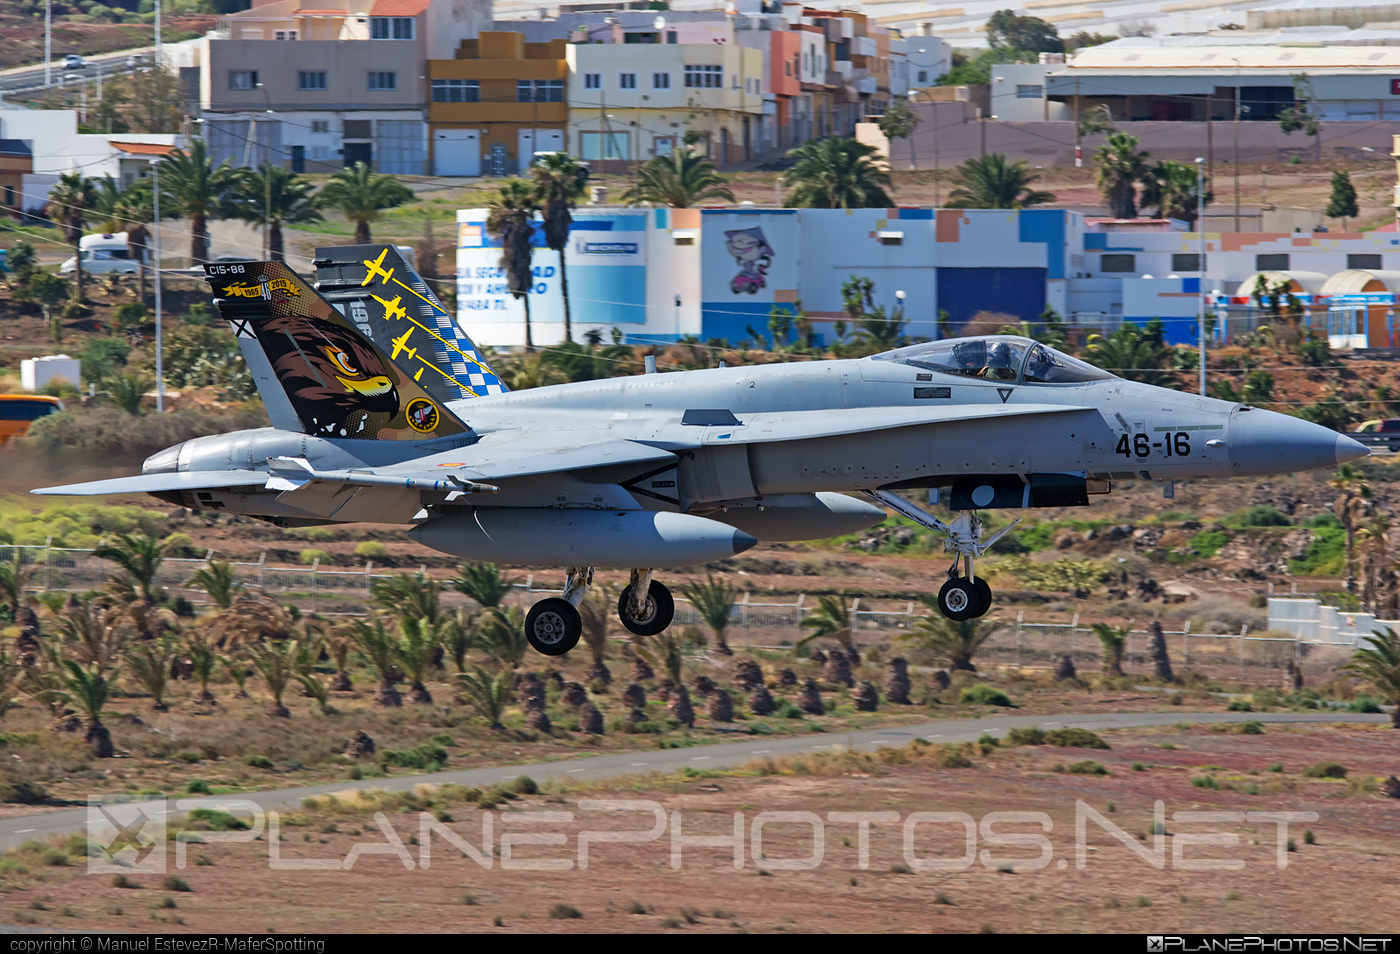 Ejército del Aire (Spanish Air Force) McDonnell Douglas EF-18A+ Hornet - C.15-88 #ef18a #ejercitodelaire #f18 #f18hornet #mcdonnelldouglas #spanishairforce